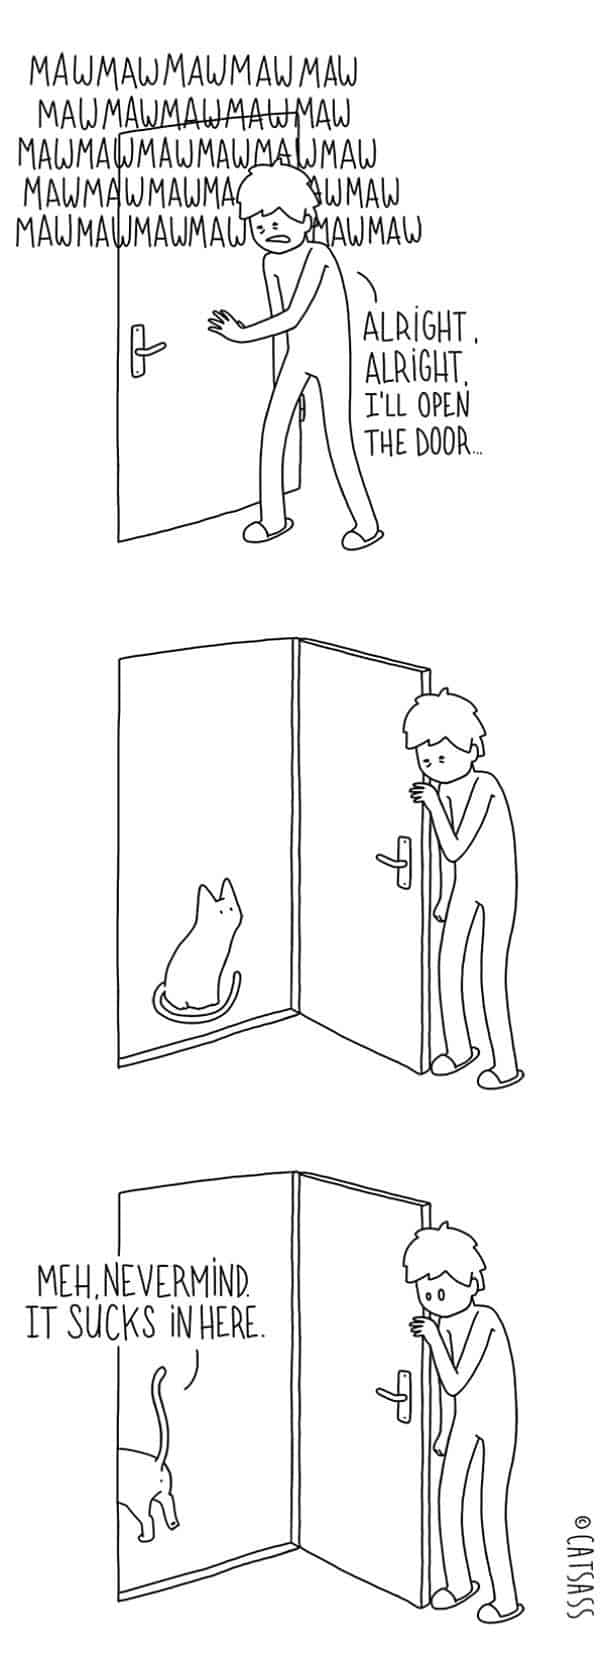 What really think cats